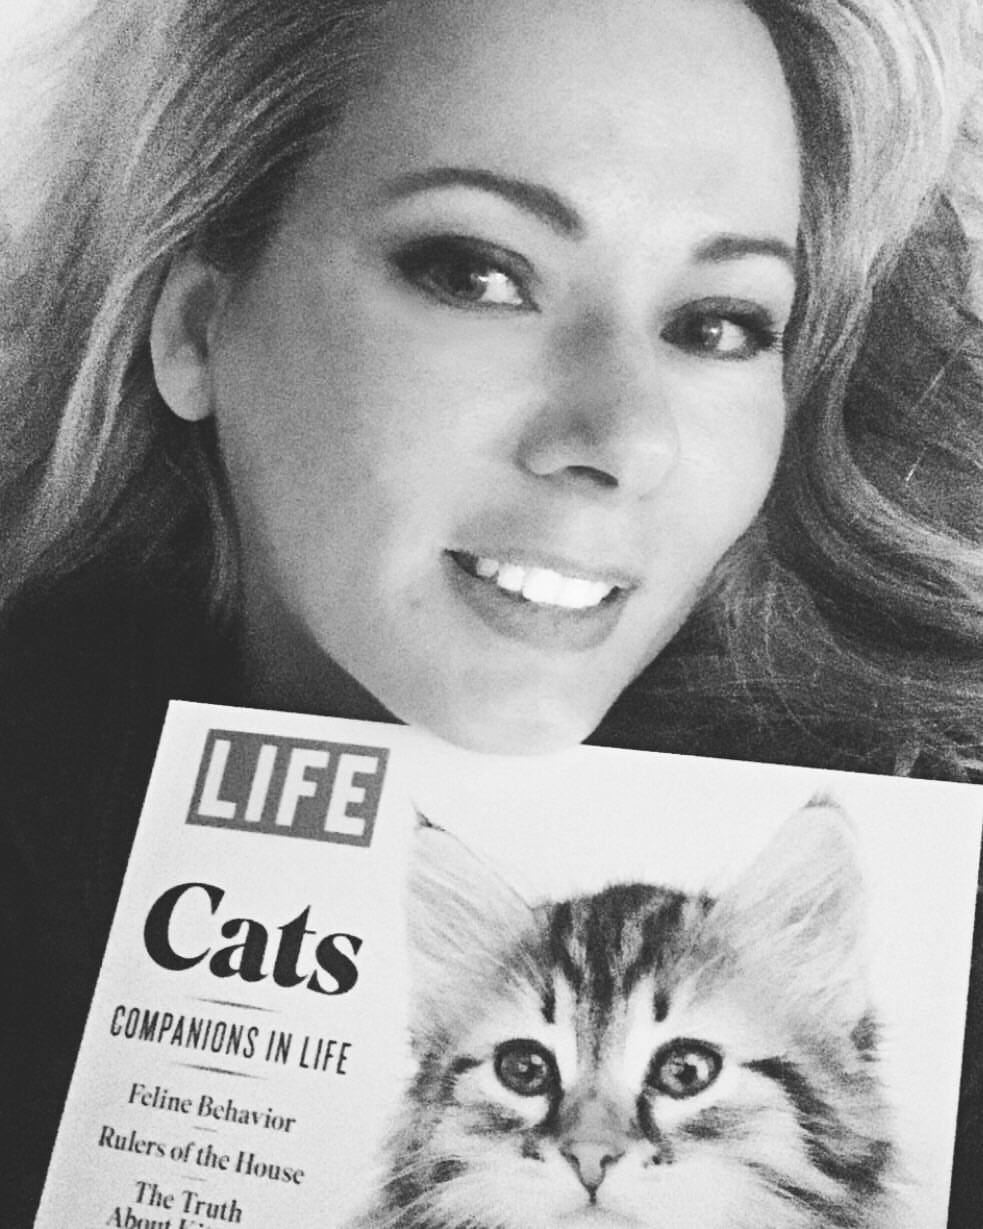 LIFE Magazine Interview with Oxford-trained Cat Behaviorist Mieshelle Nagelschneider on Cats and their Gene-encoded Behavior.